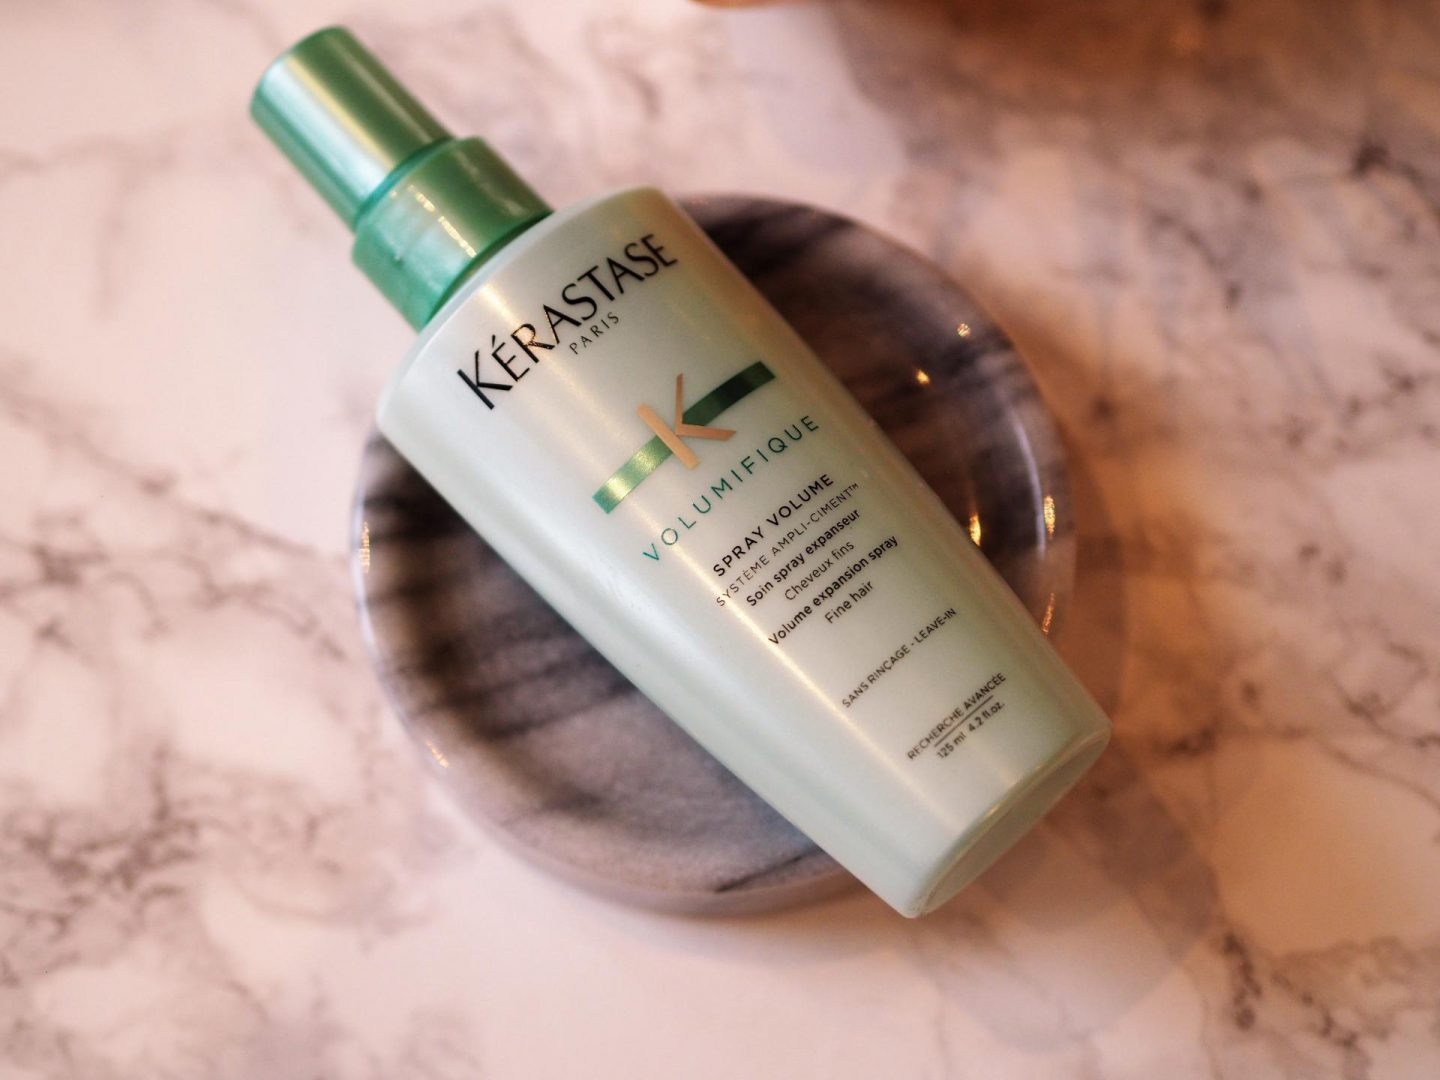 Products for fine hair - Product KERASTASE Volume Expansion Spray